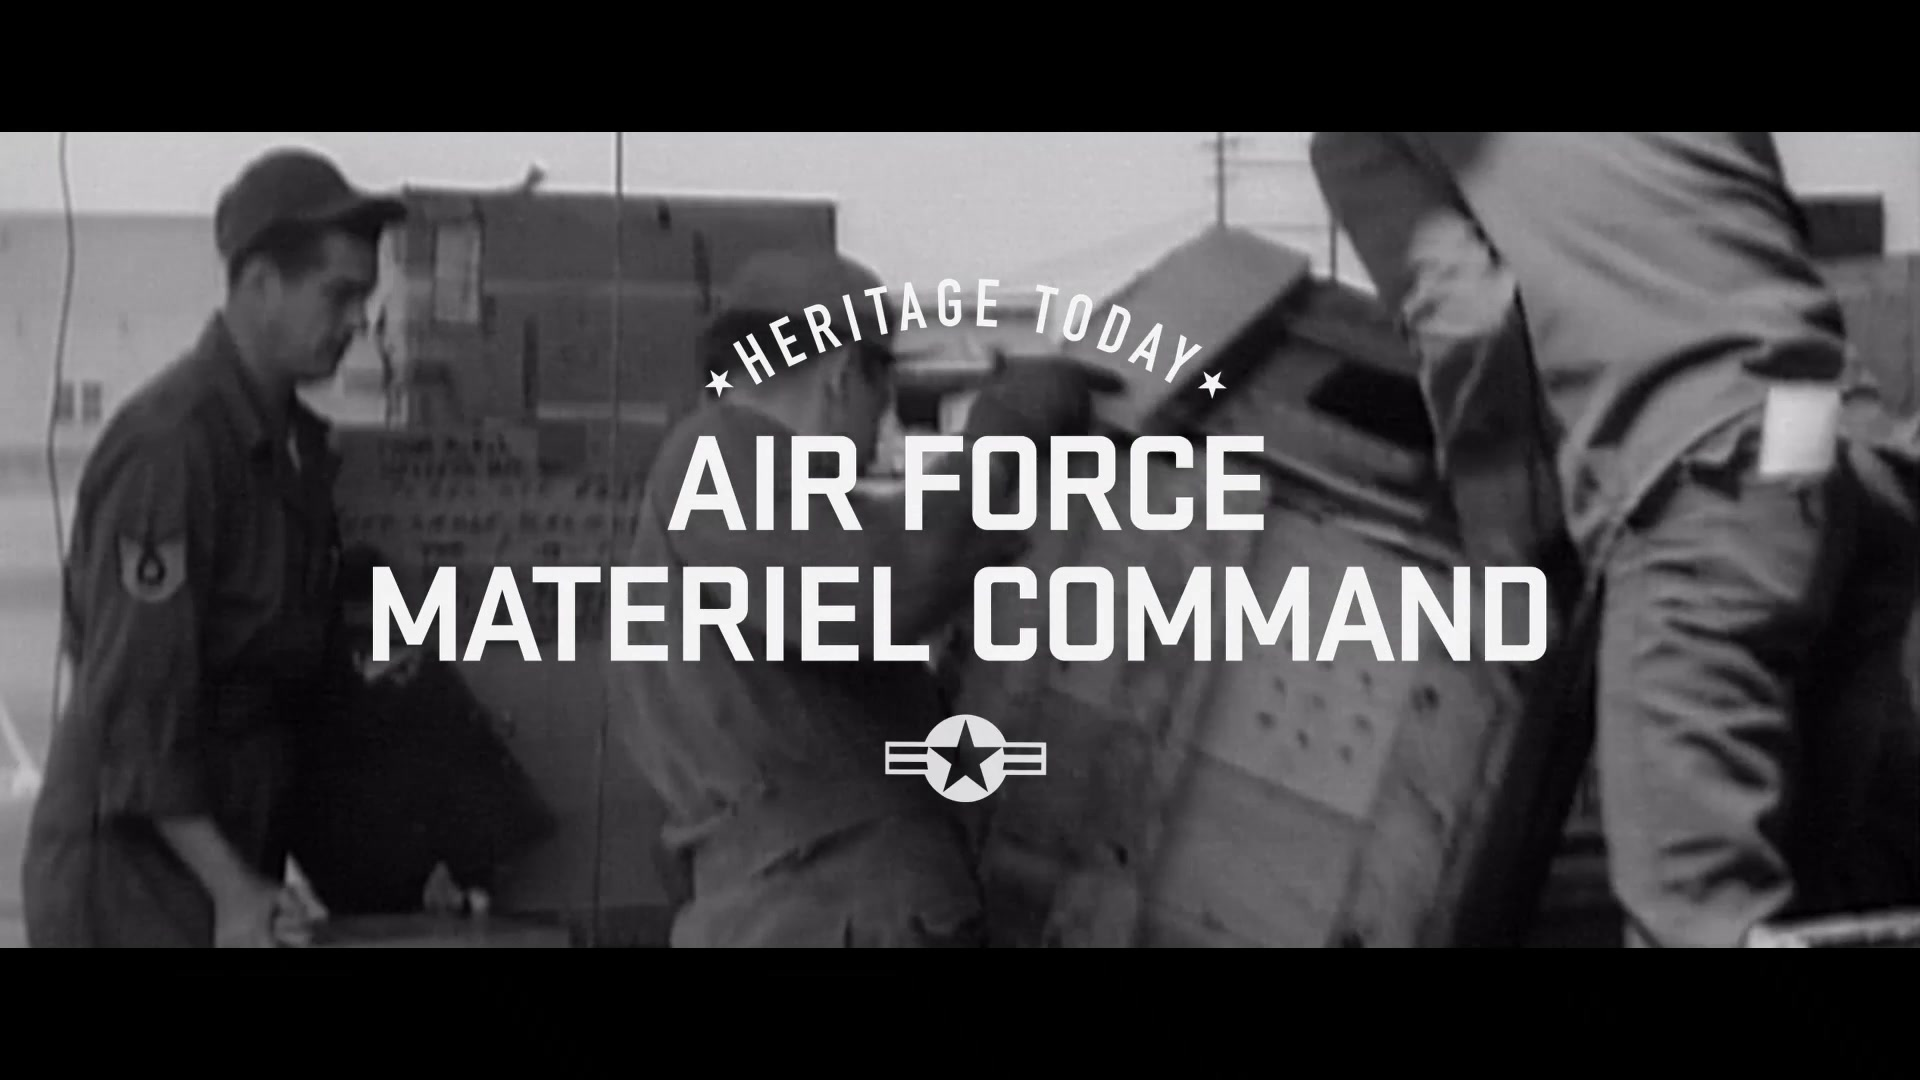 Air Force Materiel Command has been changing the nature of war for over 70 years. From lasers to razors the Air Force Materiel Command does it's wartime mission every day. Video voiced by Master Sgt. James Mackay.